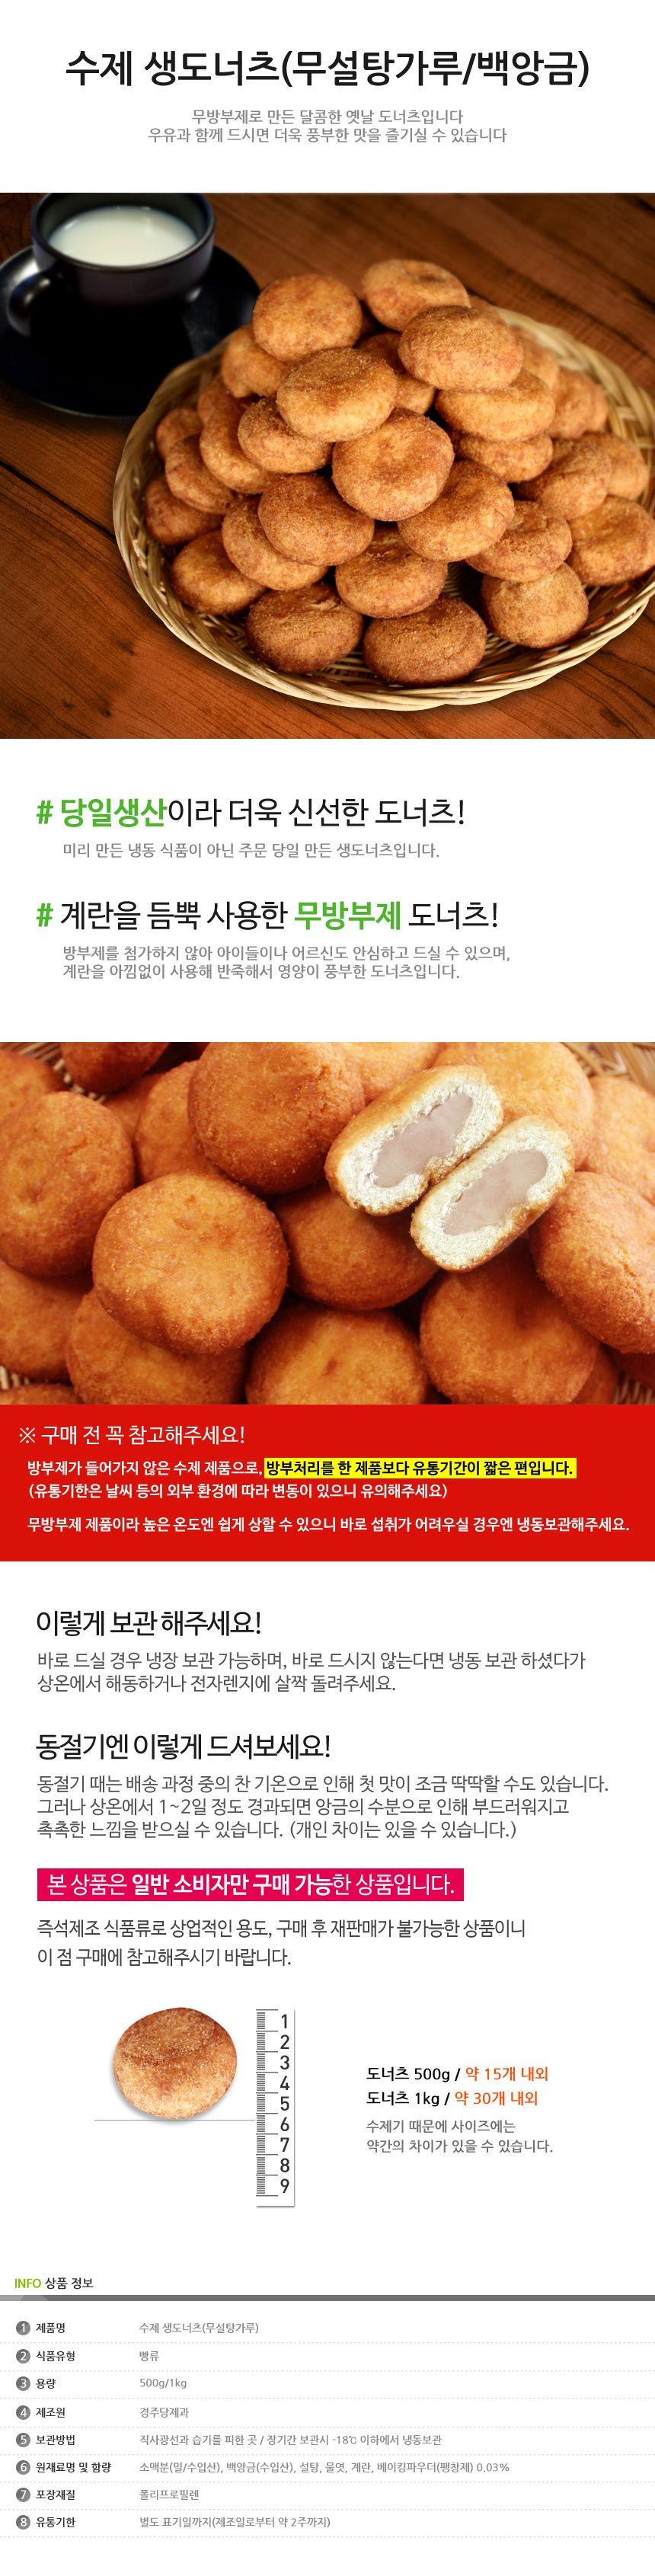 Production aid Handmade Doughnuts 700g Gyeongju Breads